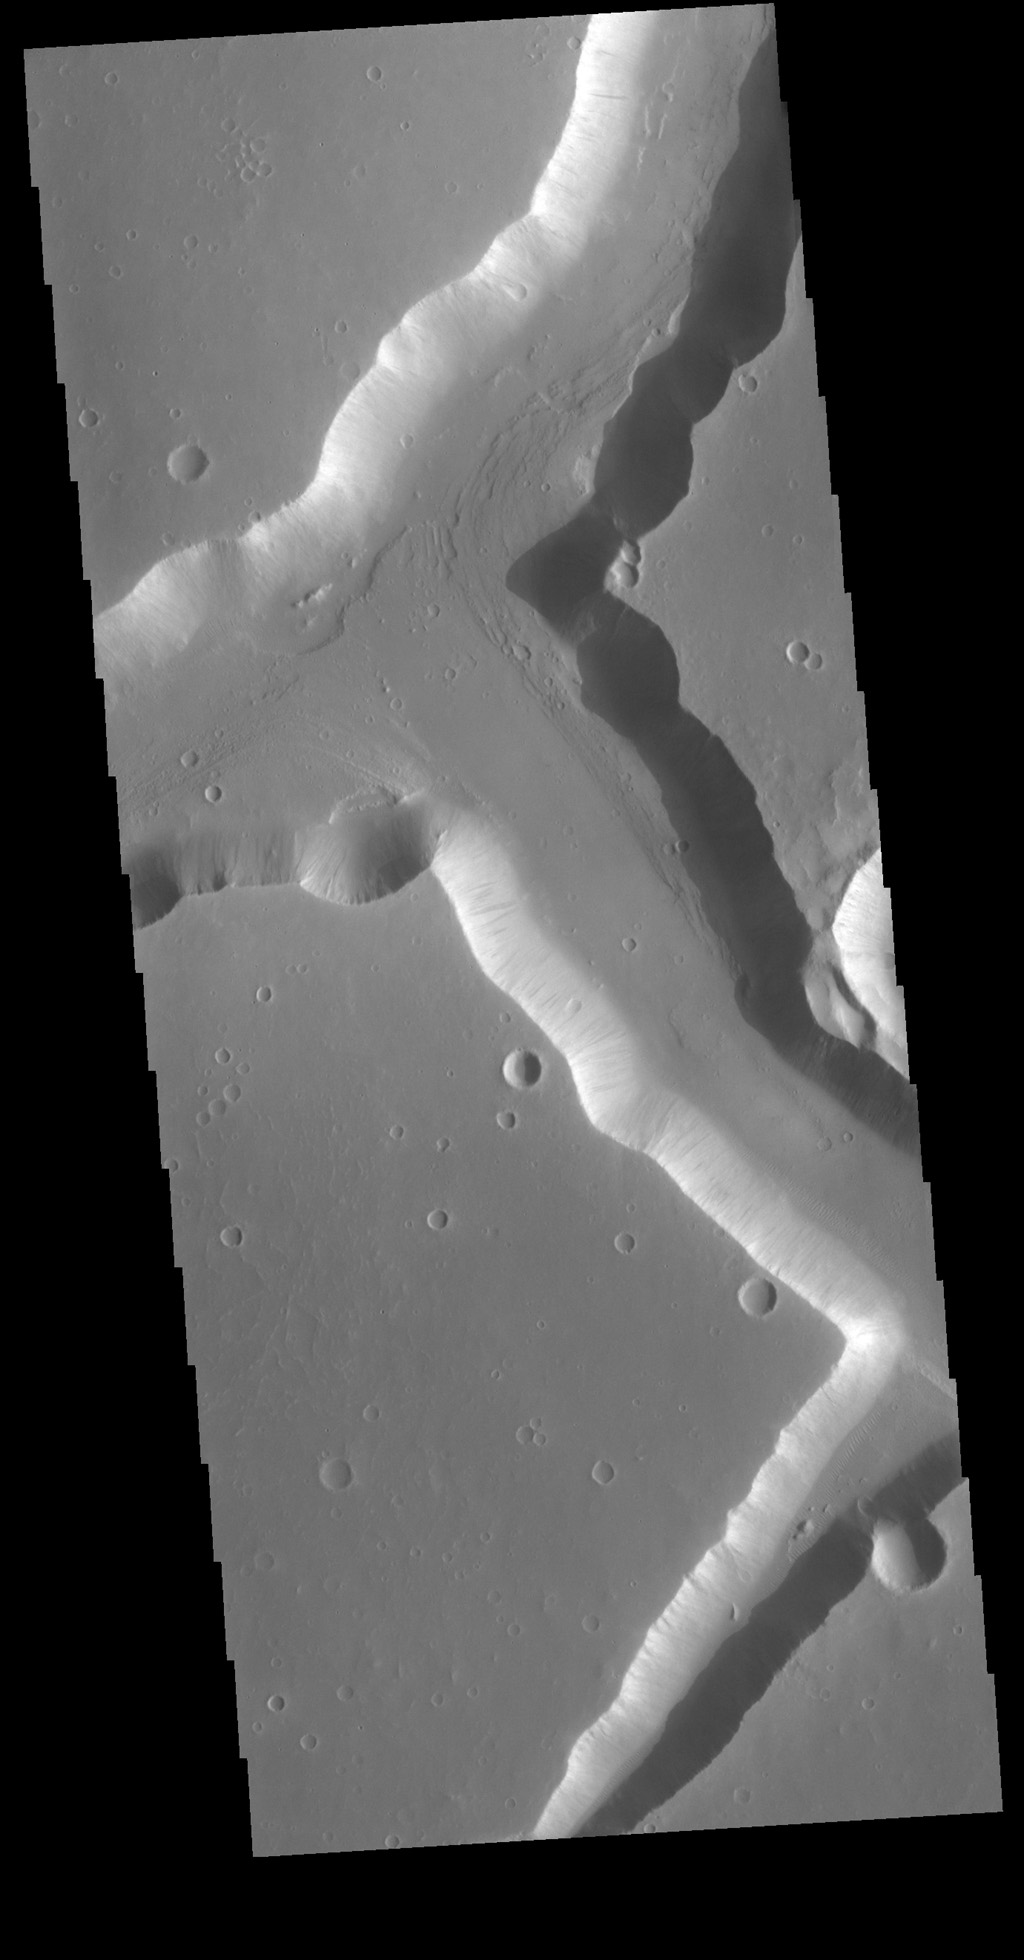 This image from NASA's Mars Odyssey shows right angle intersections from some of the graben that form Sacra Fossae. The fossae are located on the margin of Lunae Planum near the beginning of Kasei Valles.